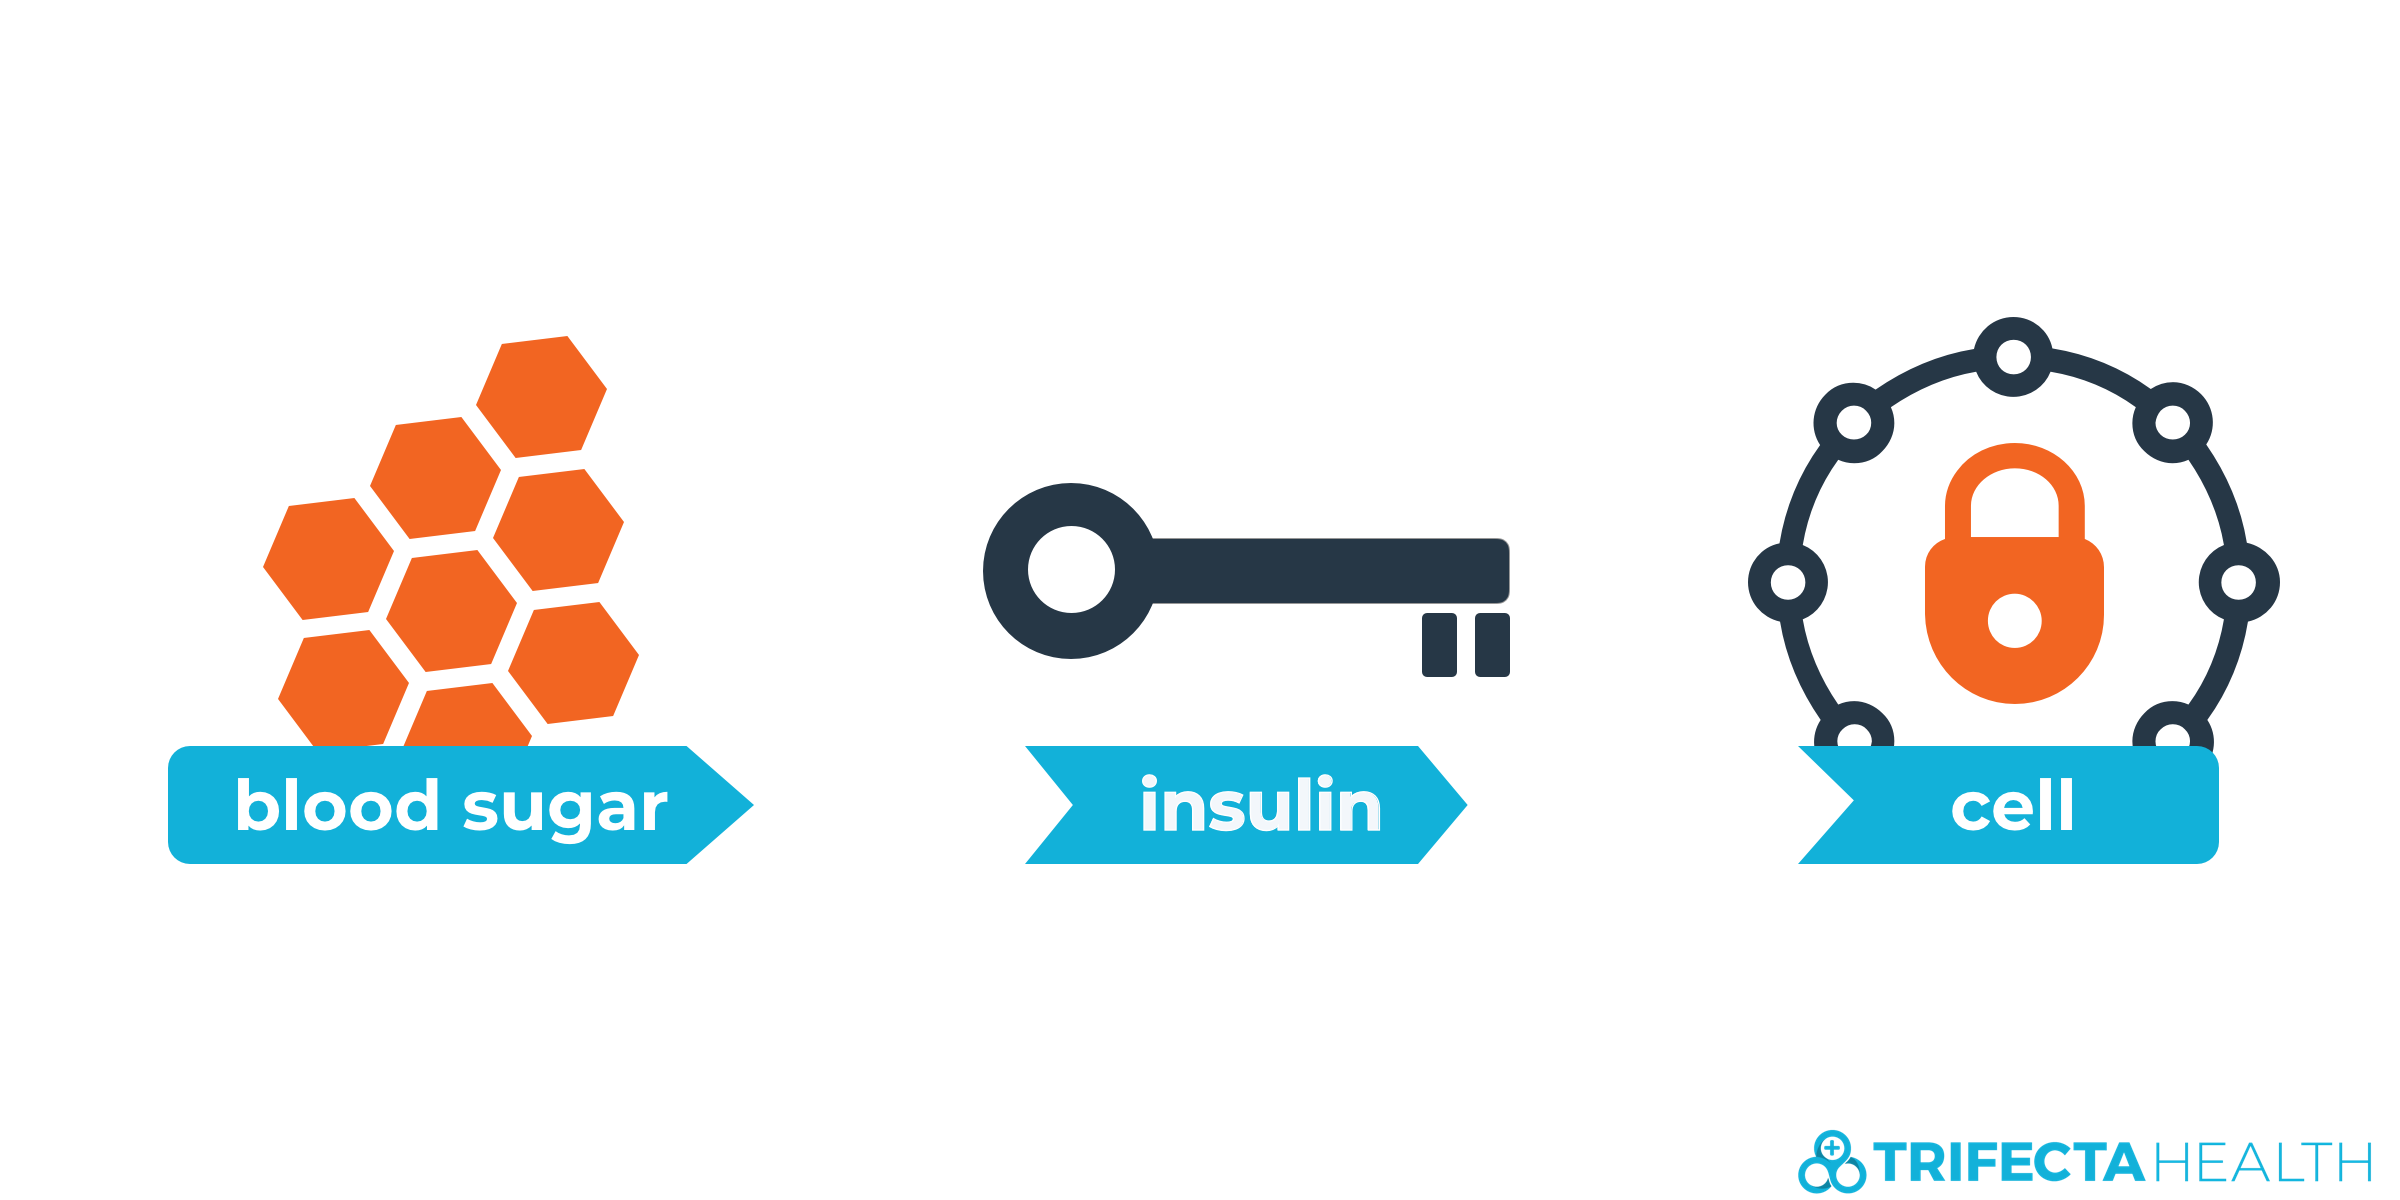 insulin_glucose_diabetes-1